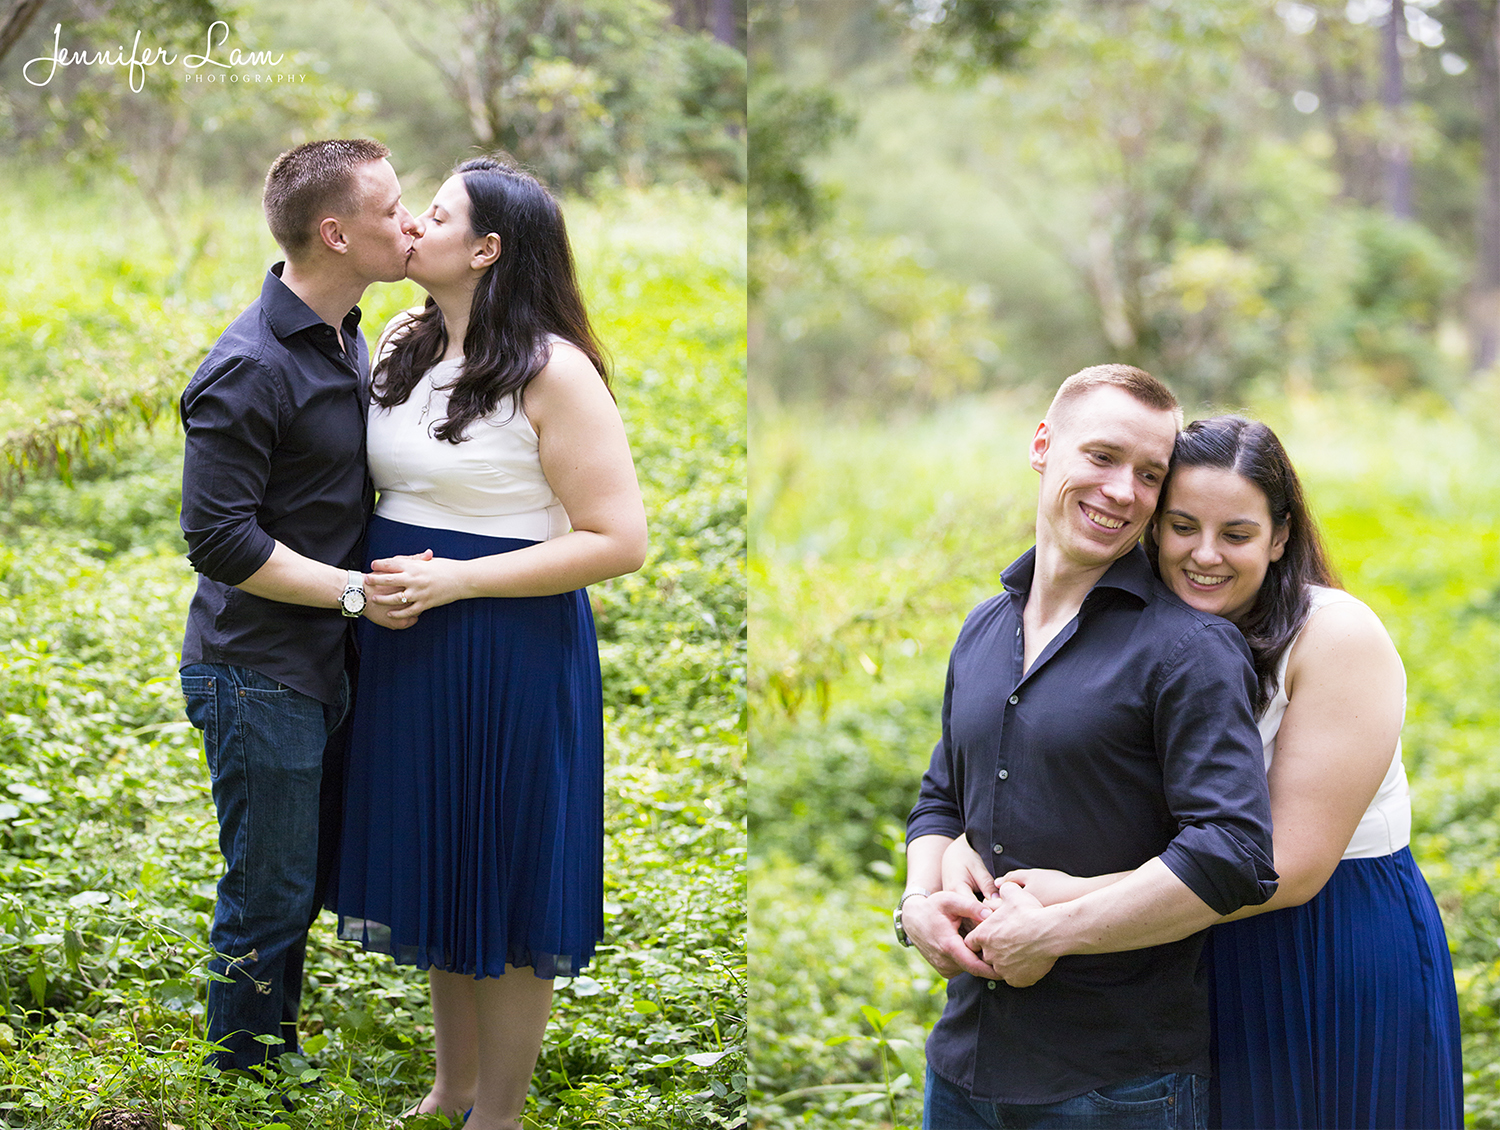 Engagement Session - Sydney Wedding Photographer - Jennifer Lam Photography (8).jpg